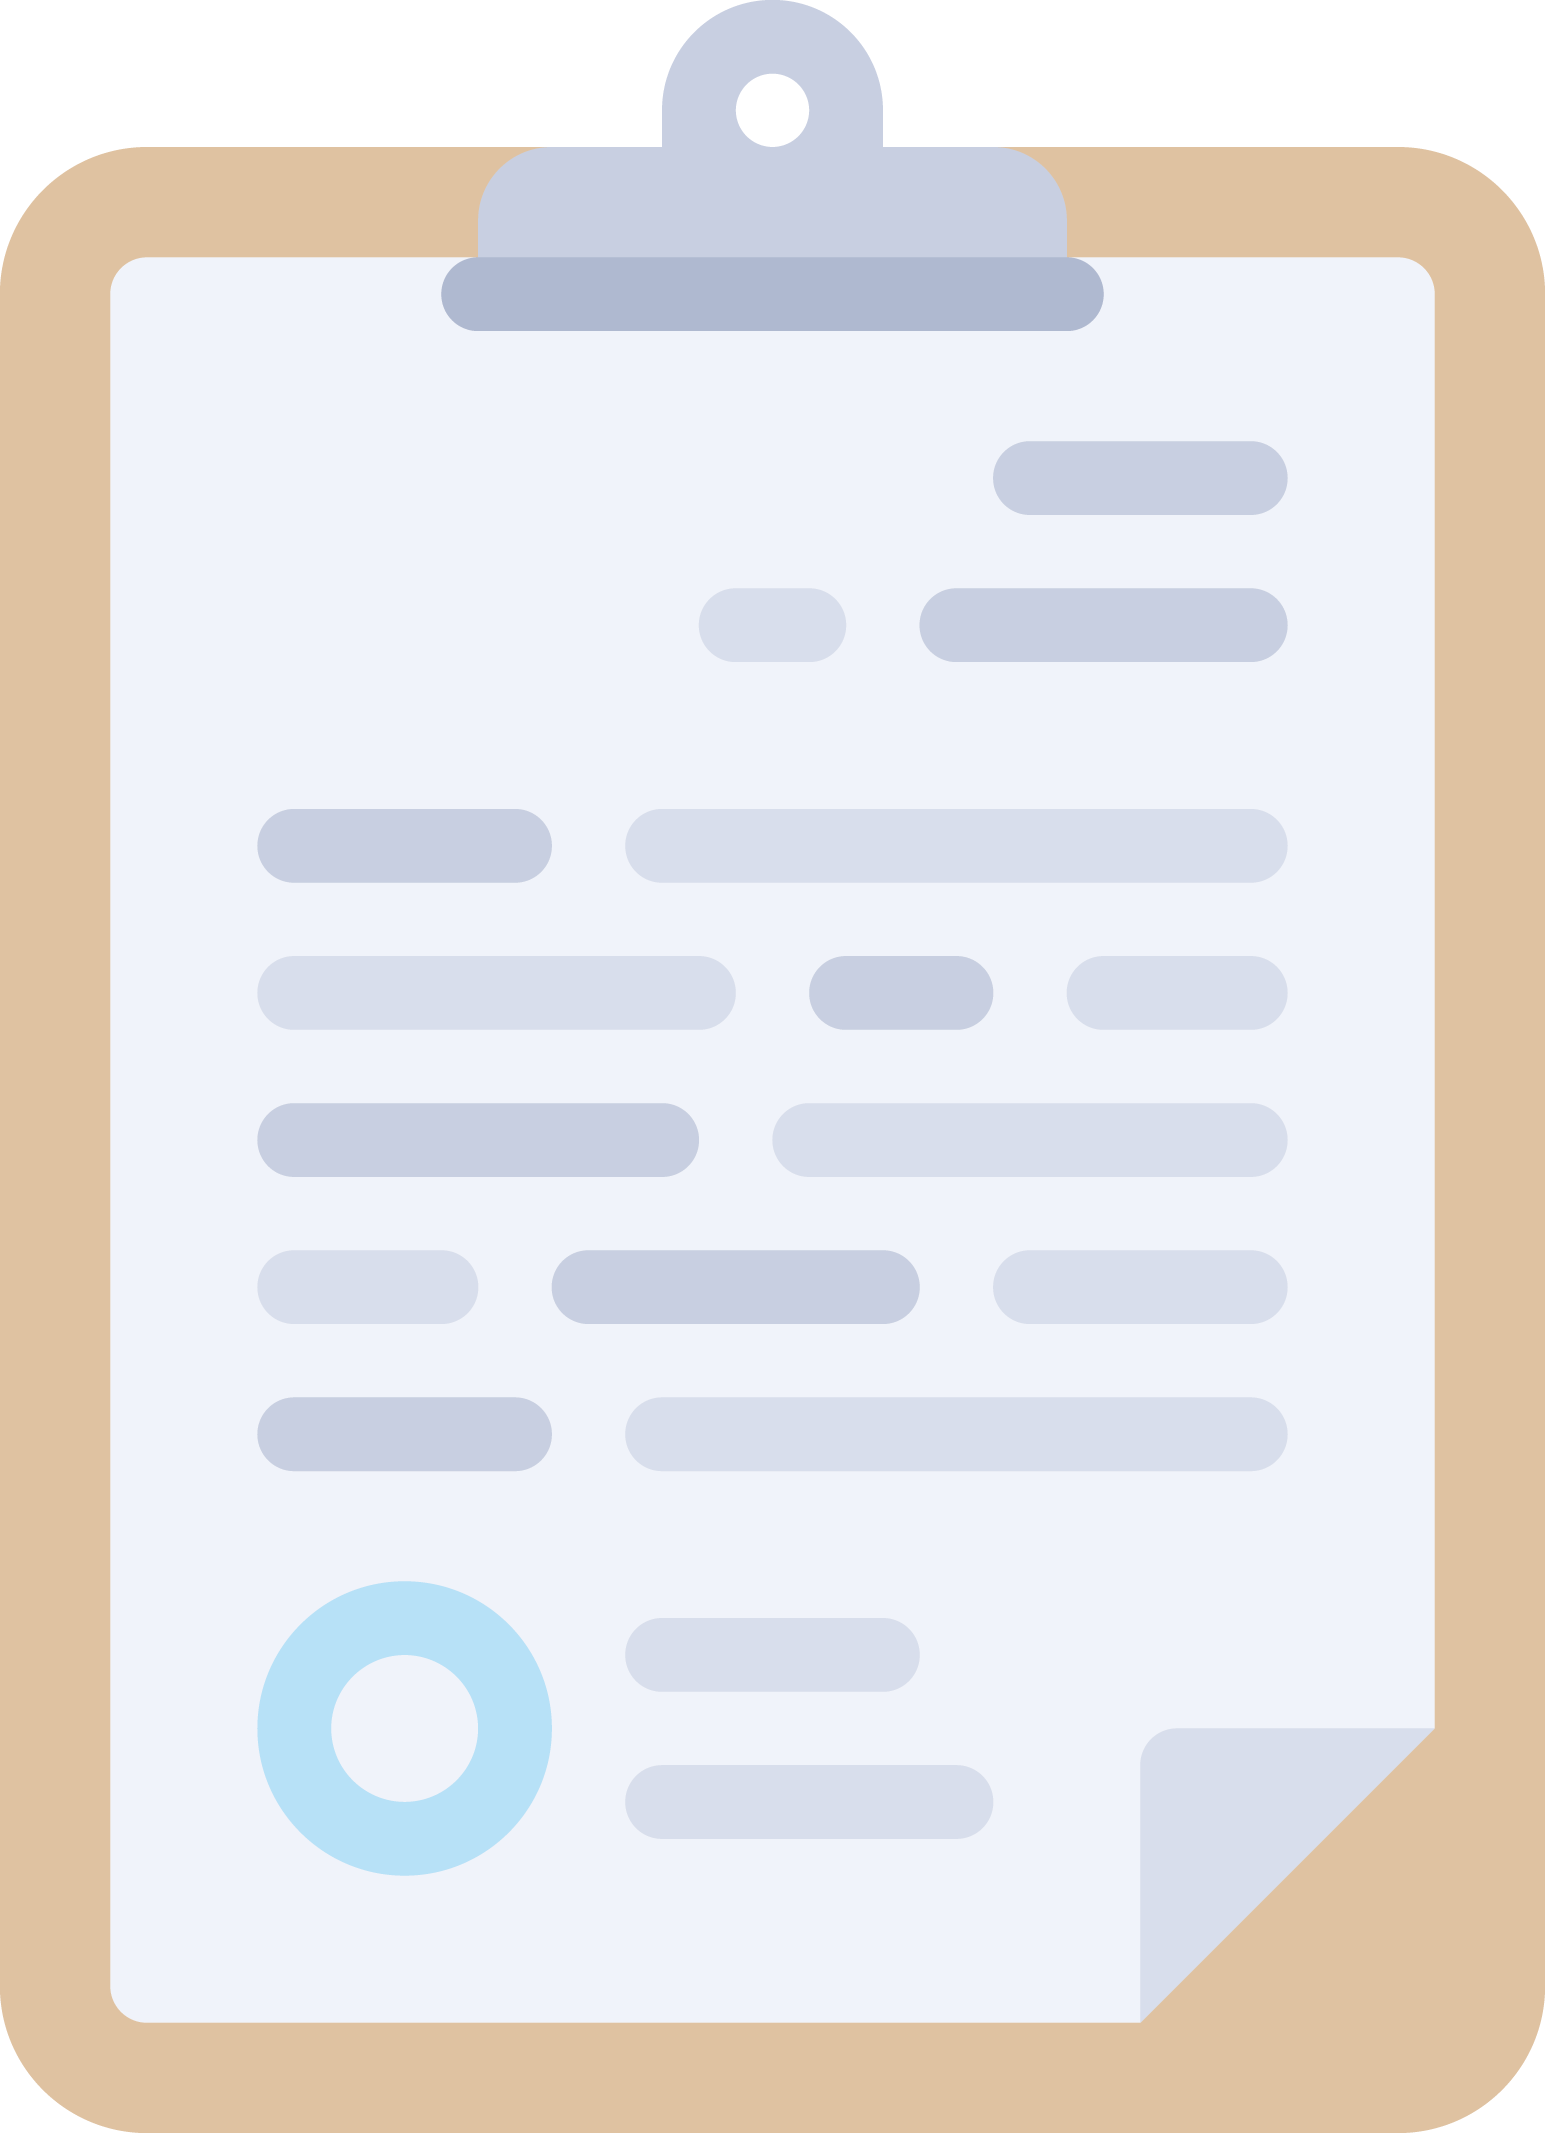 004-contract.png